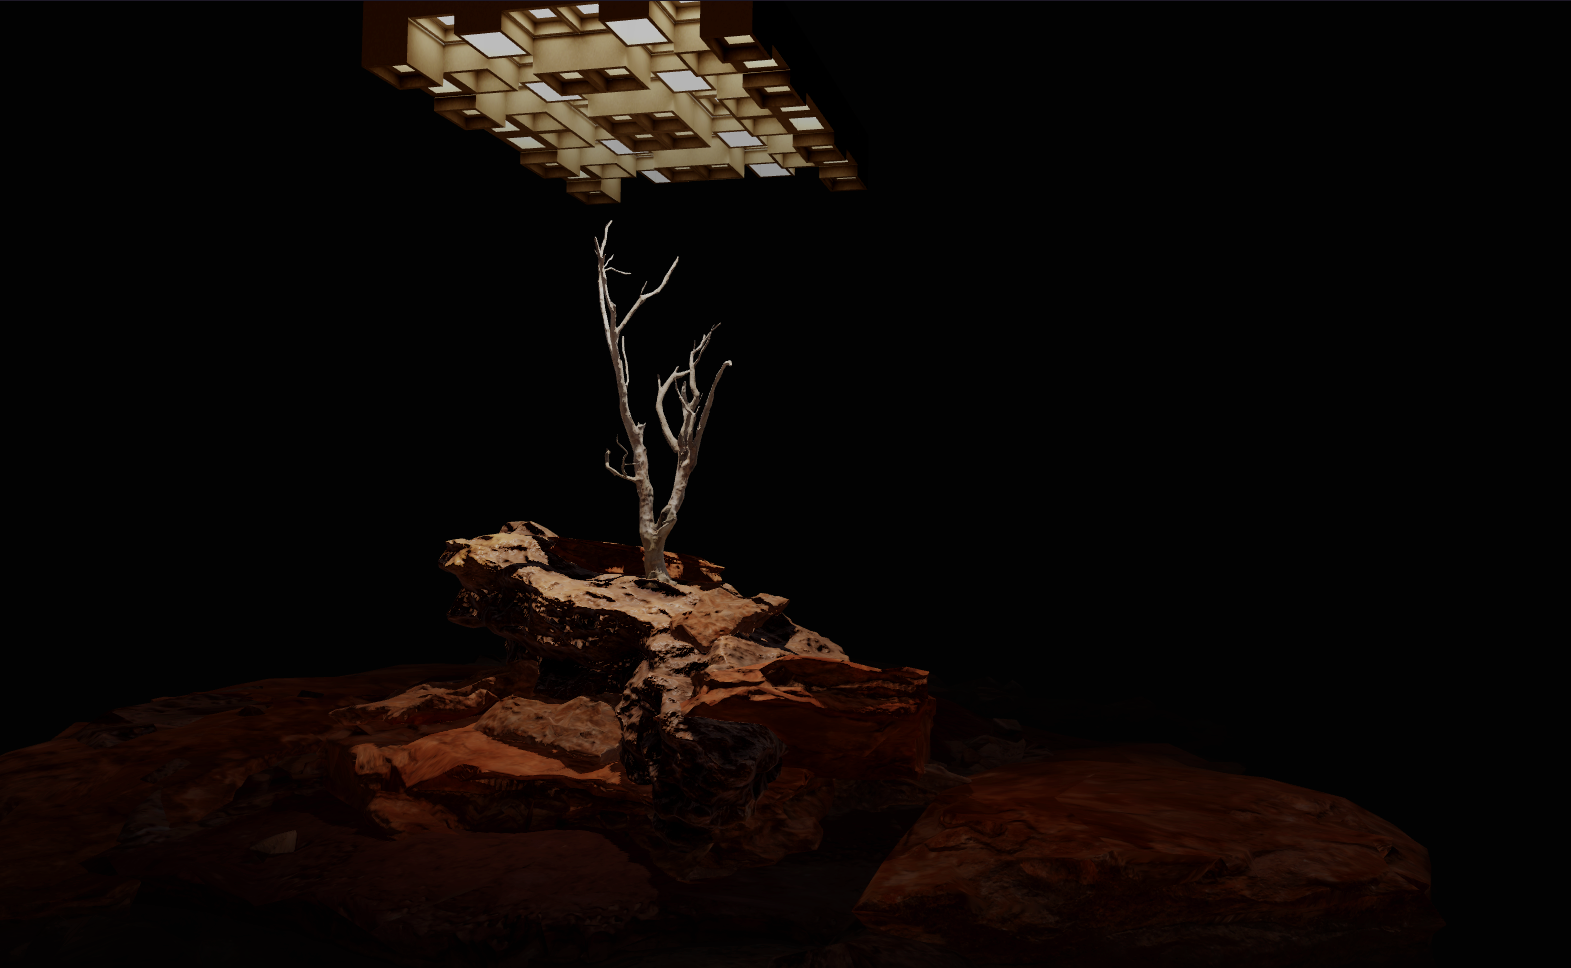 Quixel Megascans and Substance Painter into VR using BrioVR